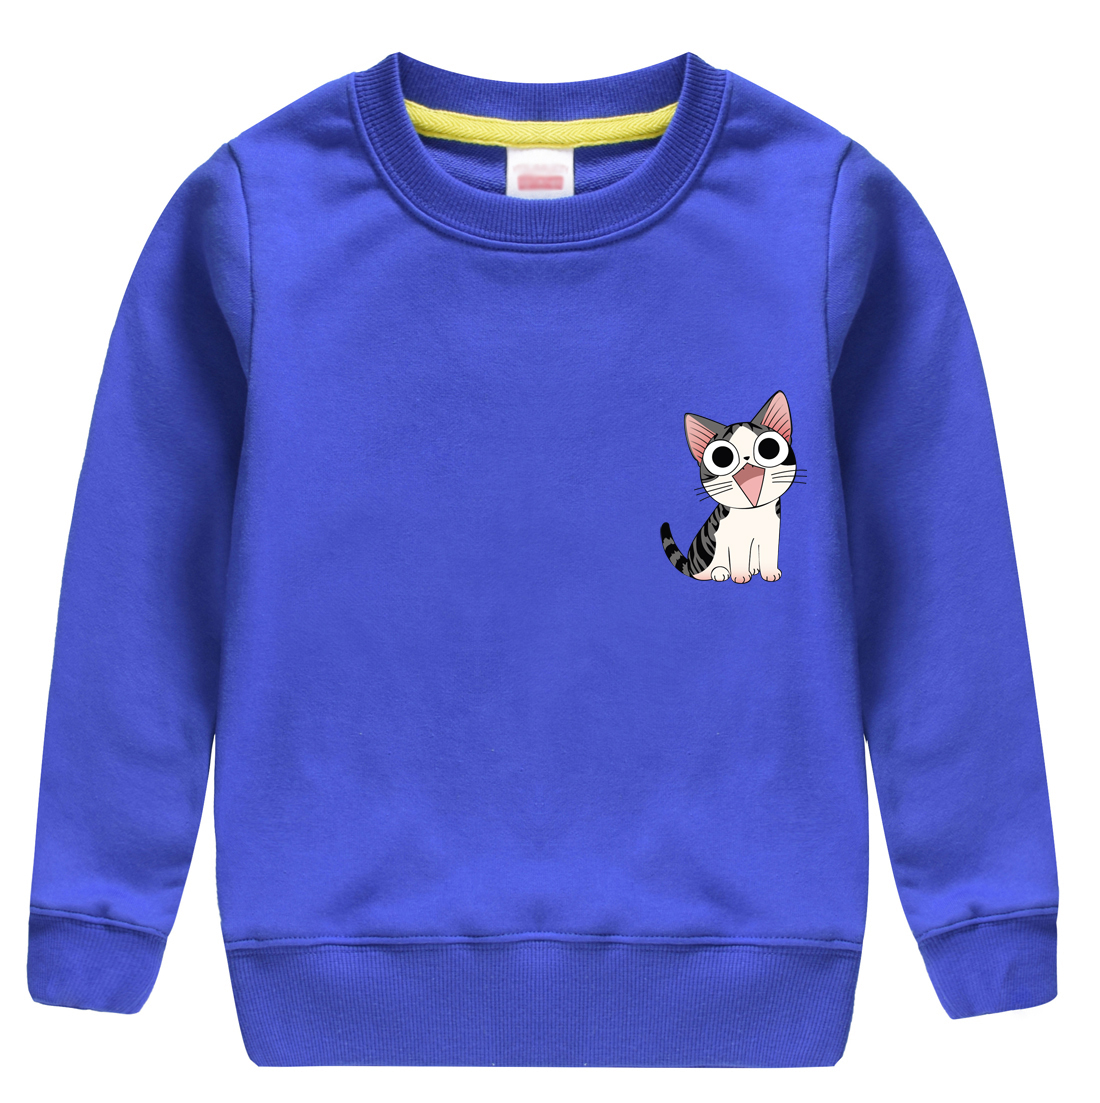 Lovely cat pattern printed winter autumn children sweater design for girl & boy keeping warm of casual clothing with 8 colors